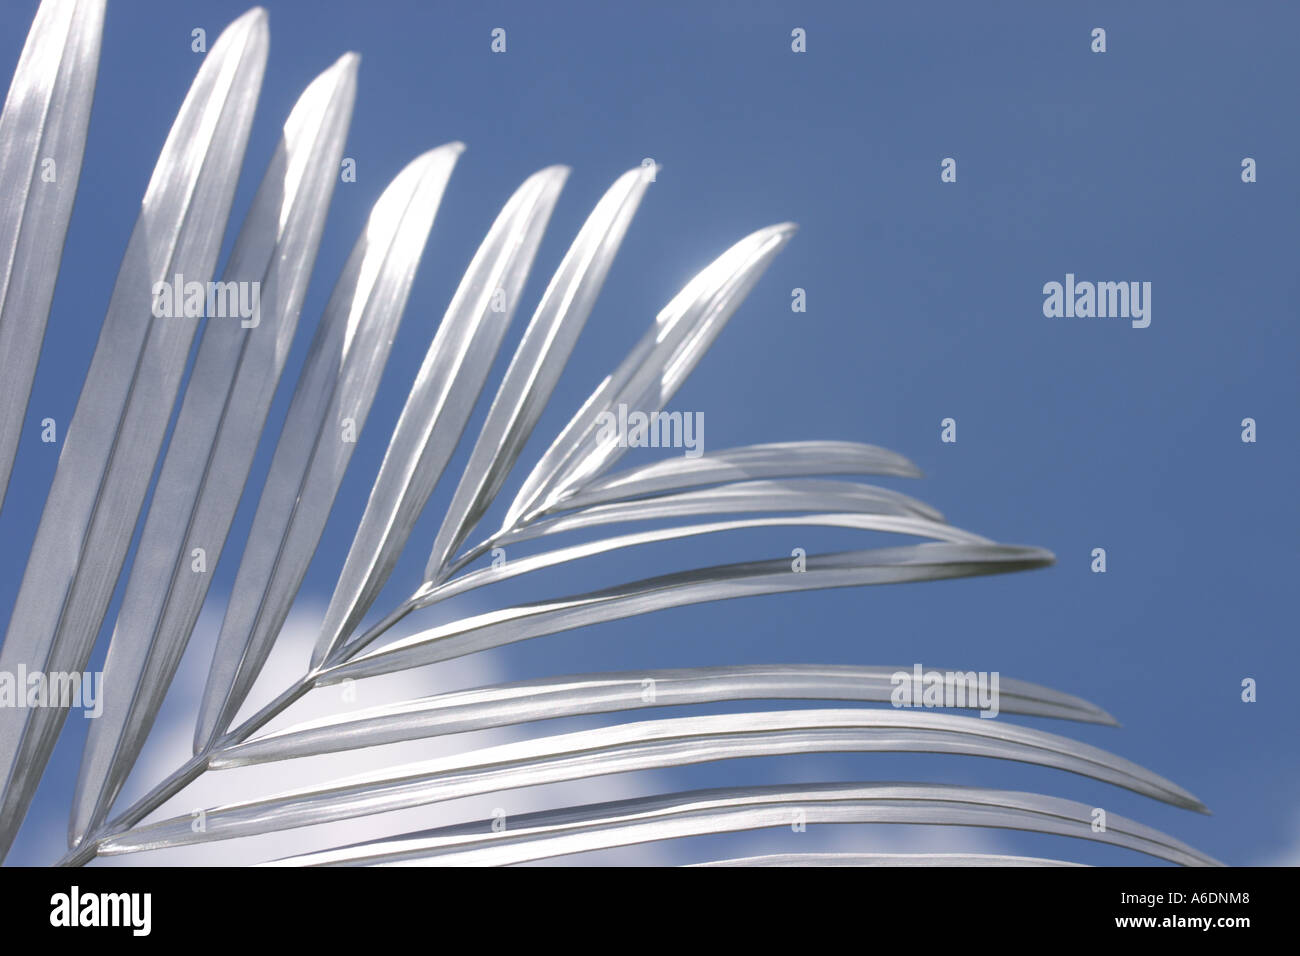 SILVER PALM FROND BLUE BACKGROUND  BAPDB 6004 - Stock Image